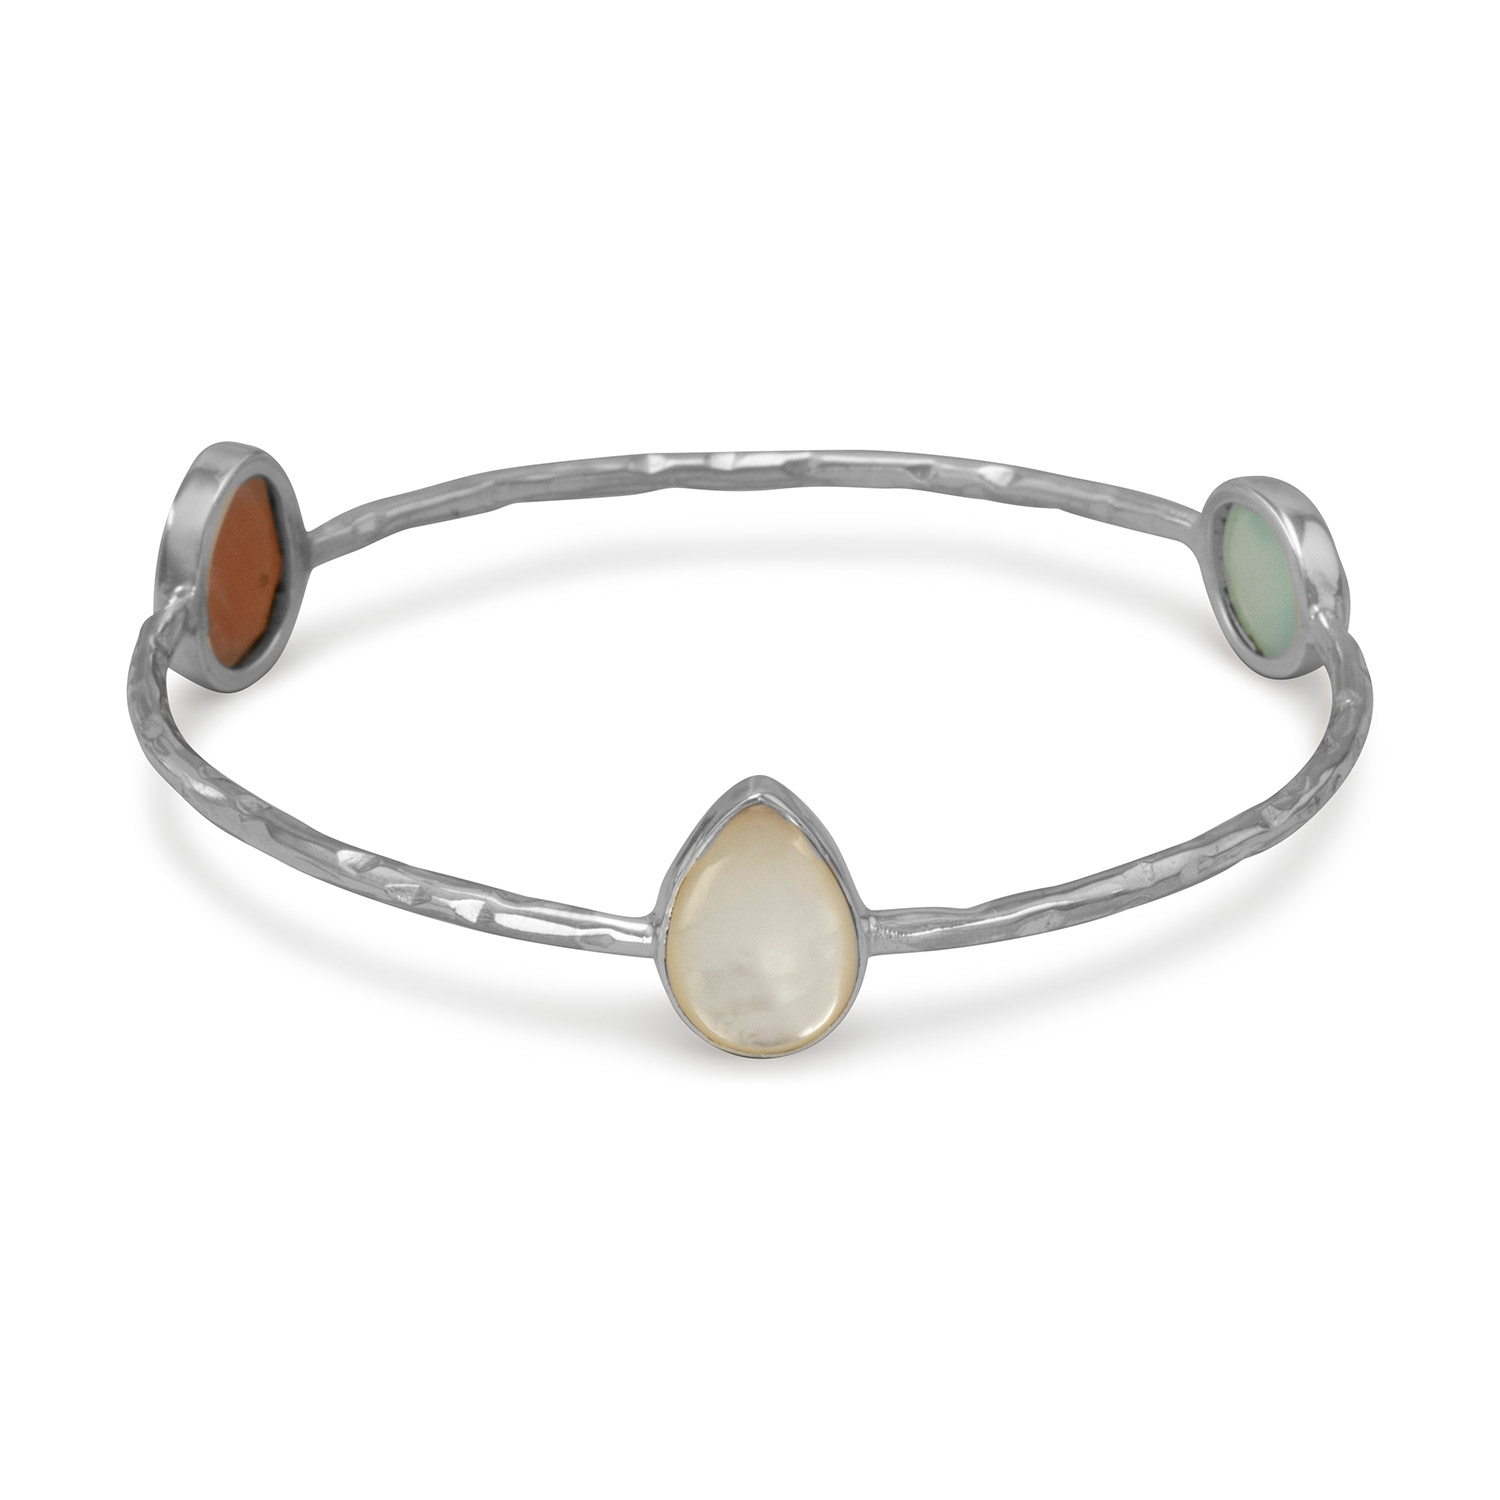 Sterling Silver Hammered 2mm Stackable Bangle Bracelet Mother Of Pearl Moonstone Green Chalcedony by